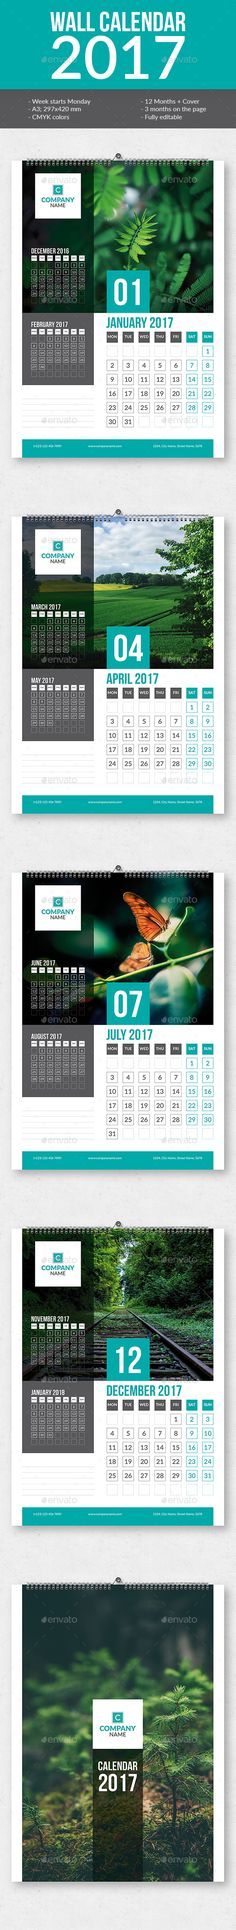 Indesign Calendar Template Design Calendar For And Professional